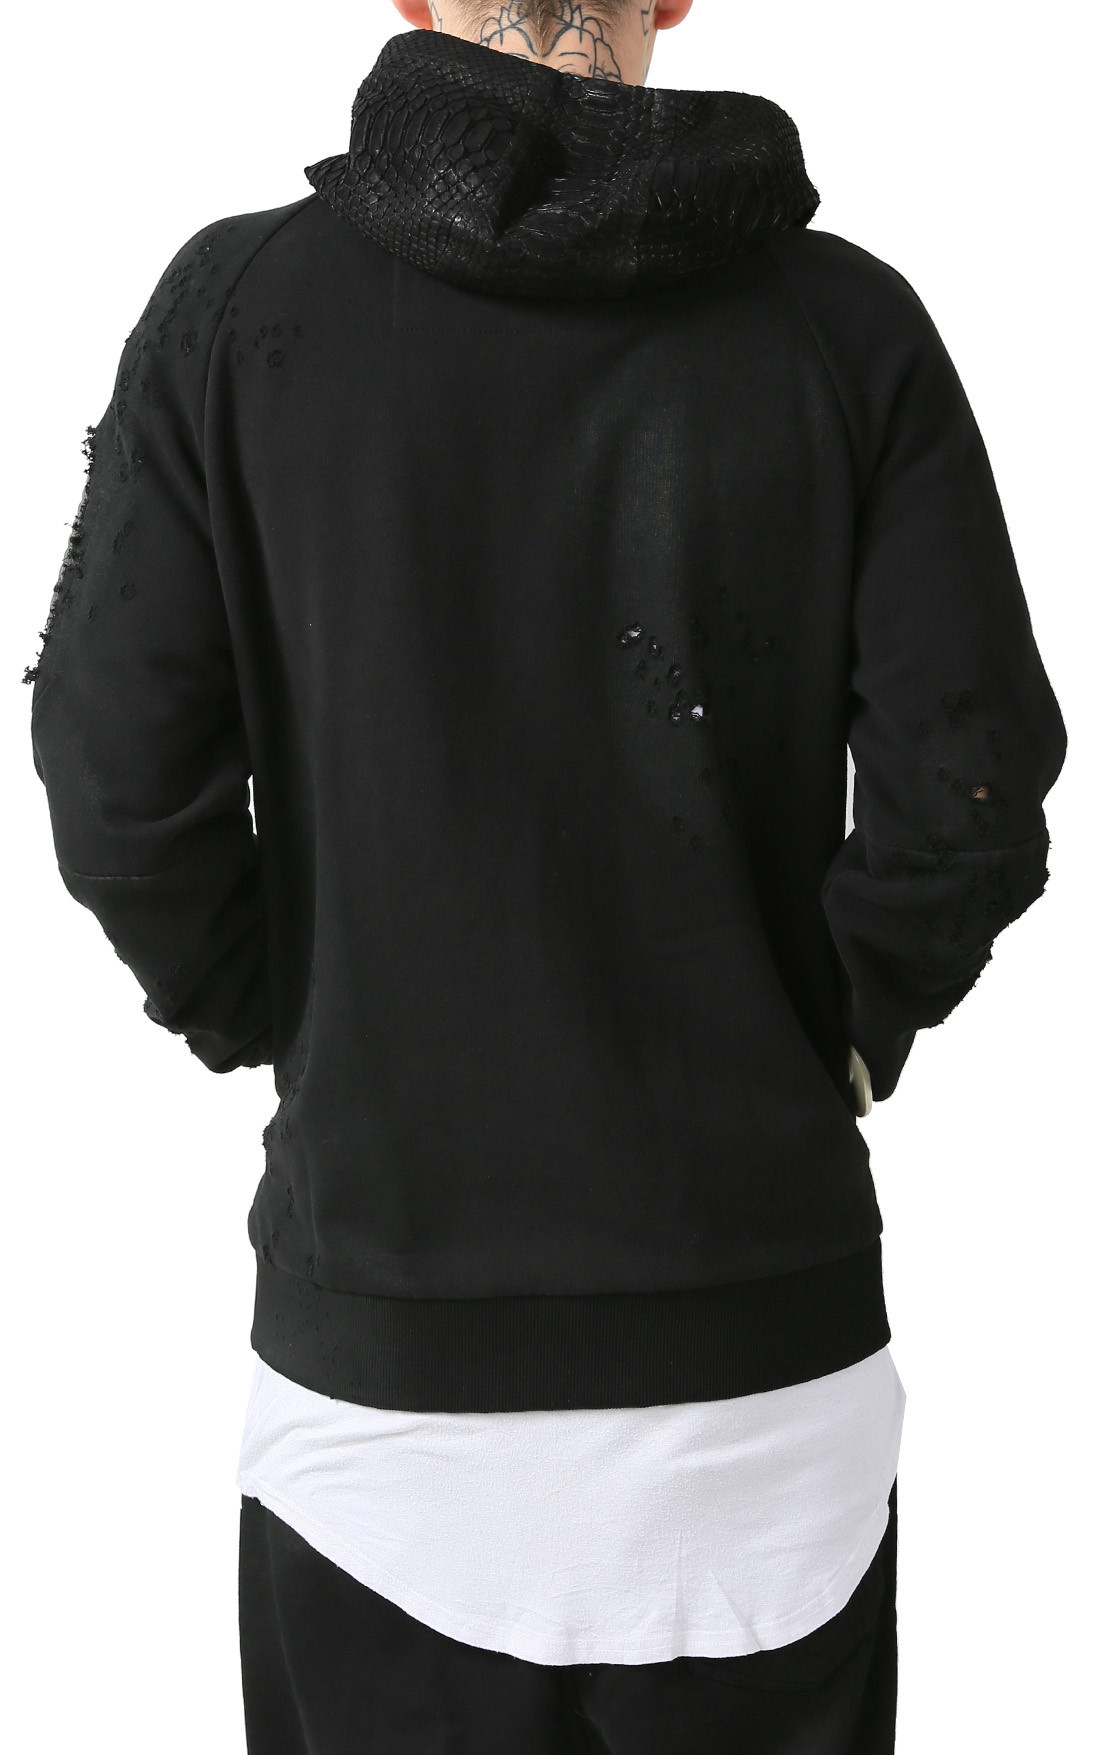 RH45 - Black Sweatjacket with Python Hood (H203)